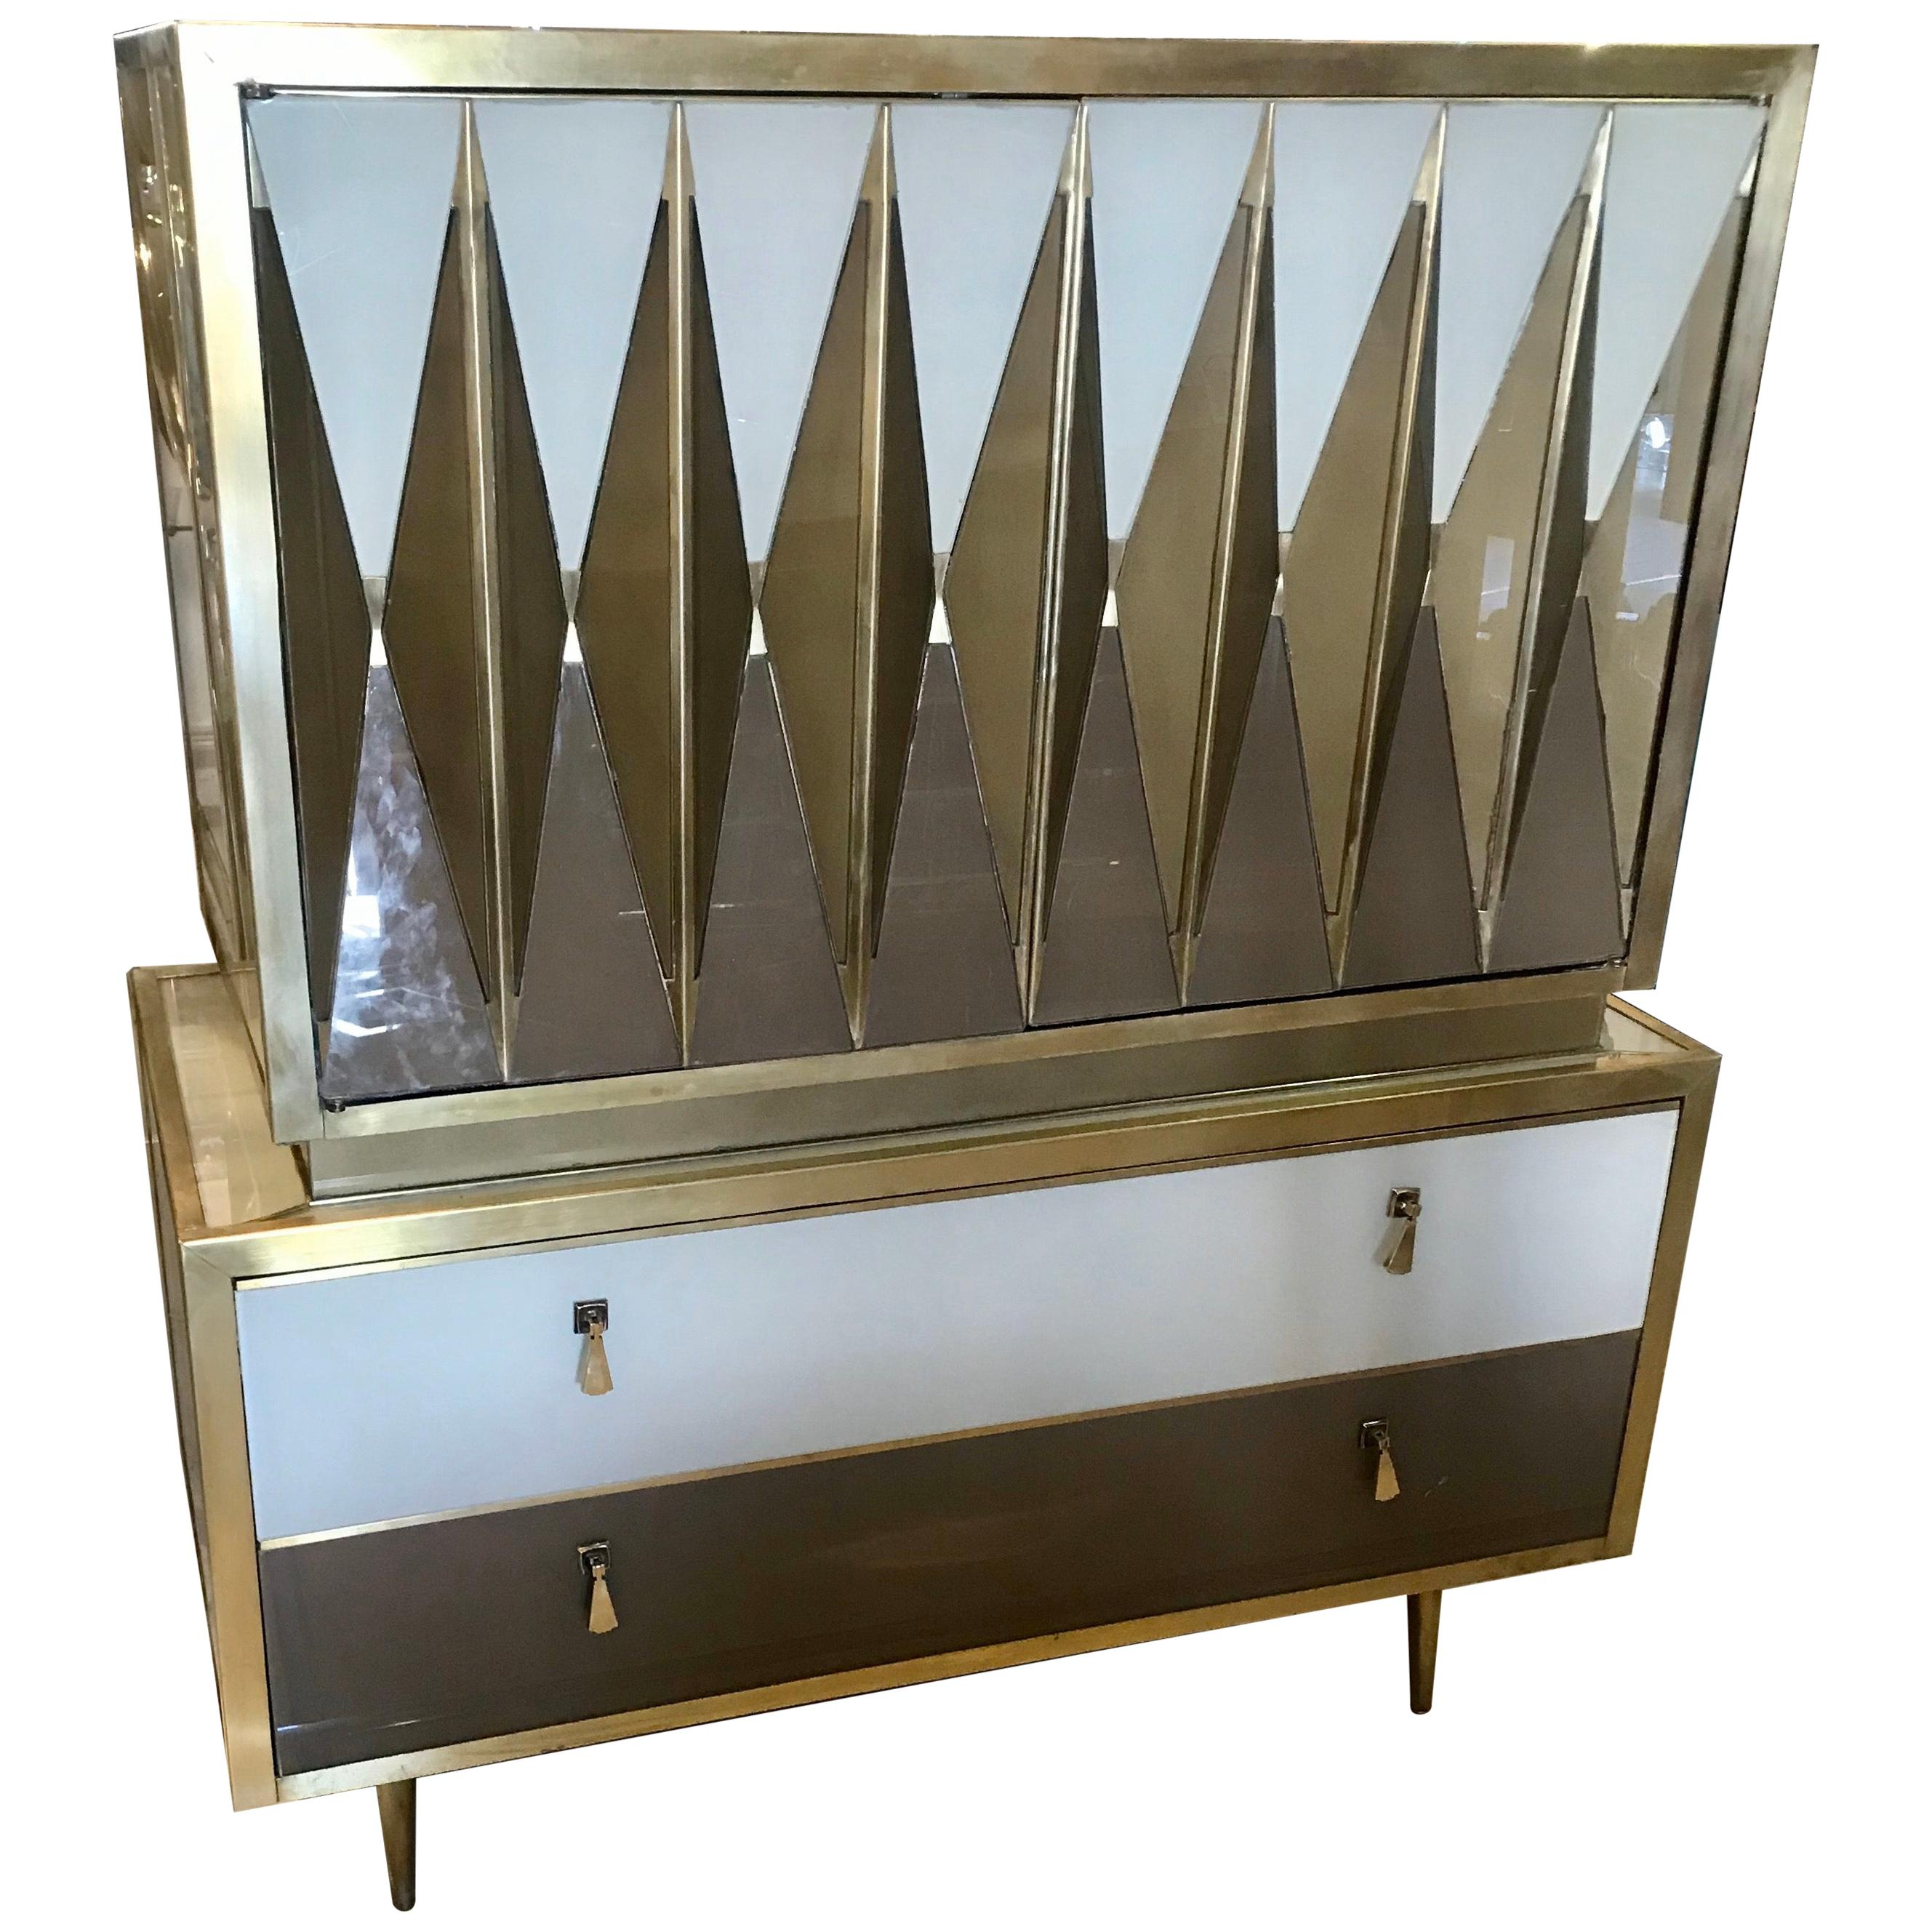 Midcentury Italian Glass and Brass Chest of Drawers